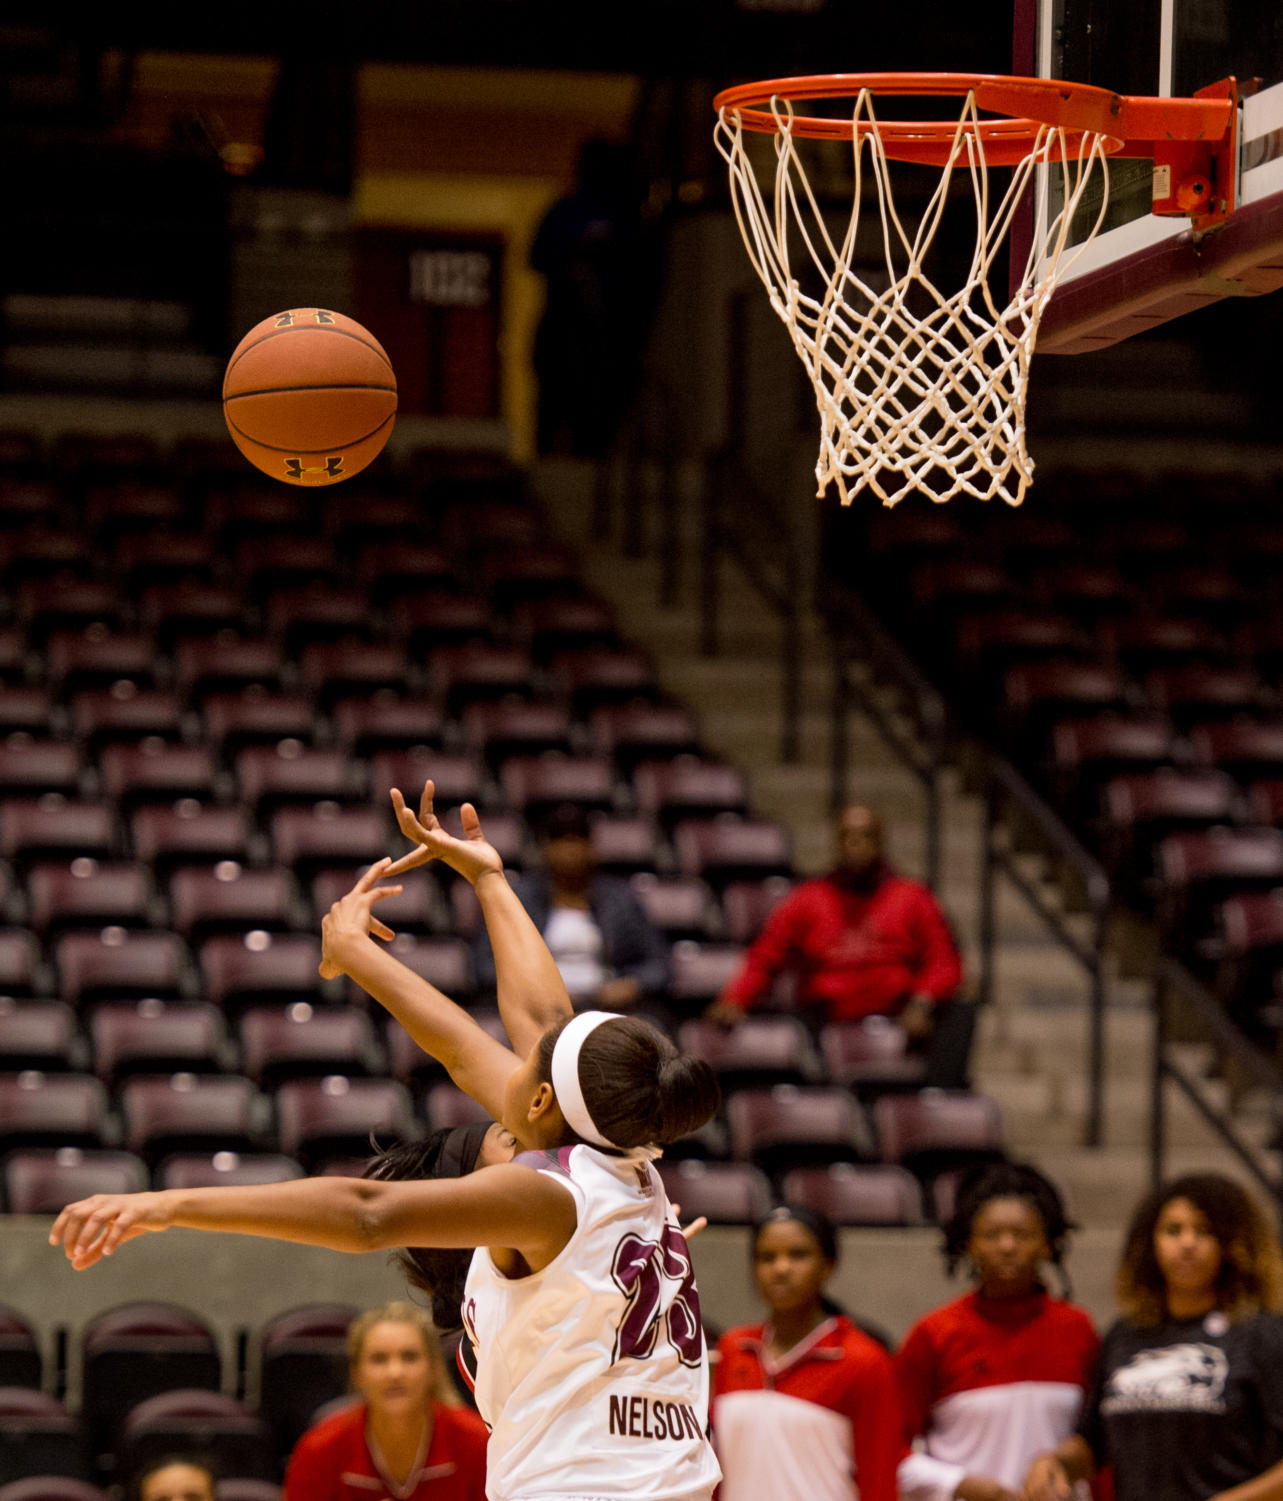 Sophomore+guard+Kristen+Nelson+fights+for+the+ball+Monday%2C+Nov.+27%2C+2017%2C+during+the+Salukis%27+57-53+loss+to+the+SIU+Edwardsville+Cougars+at+SIU+Arena.+%28Brian+Mu%C3%B1oz+%7C+%40BrianMMunoz%29